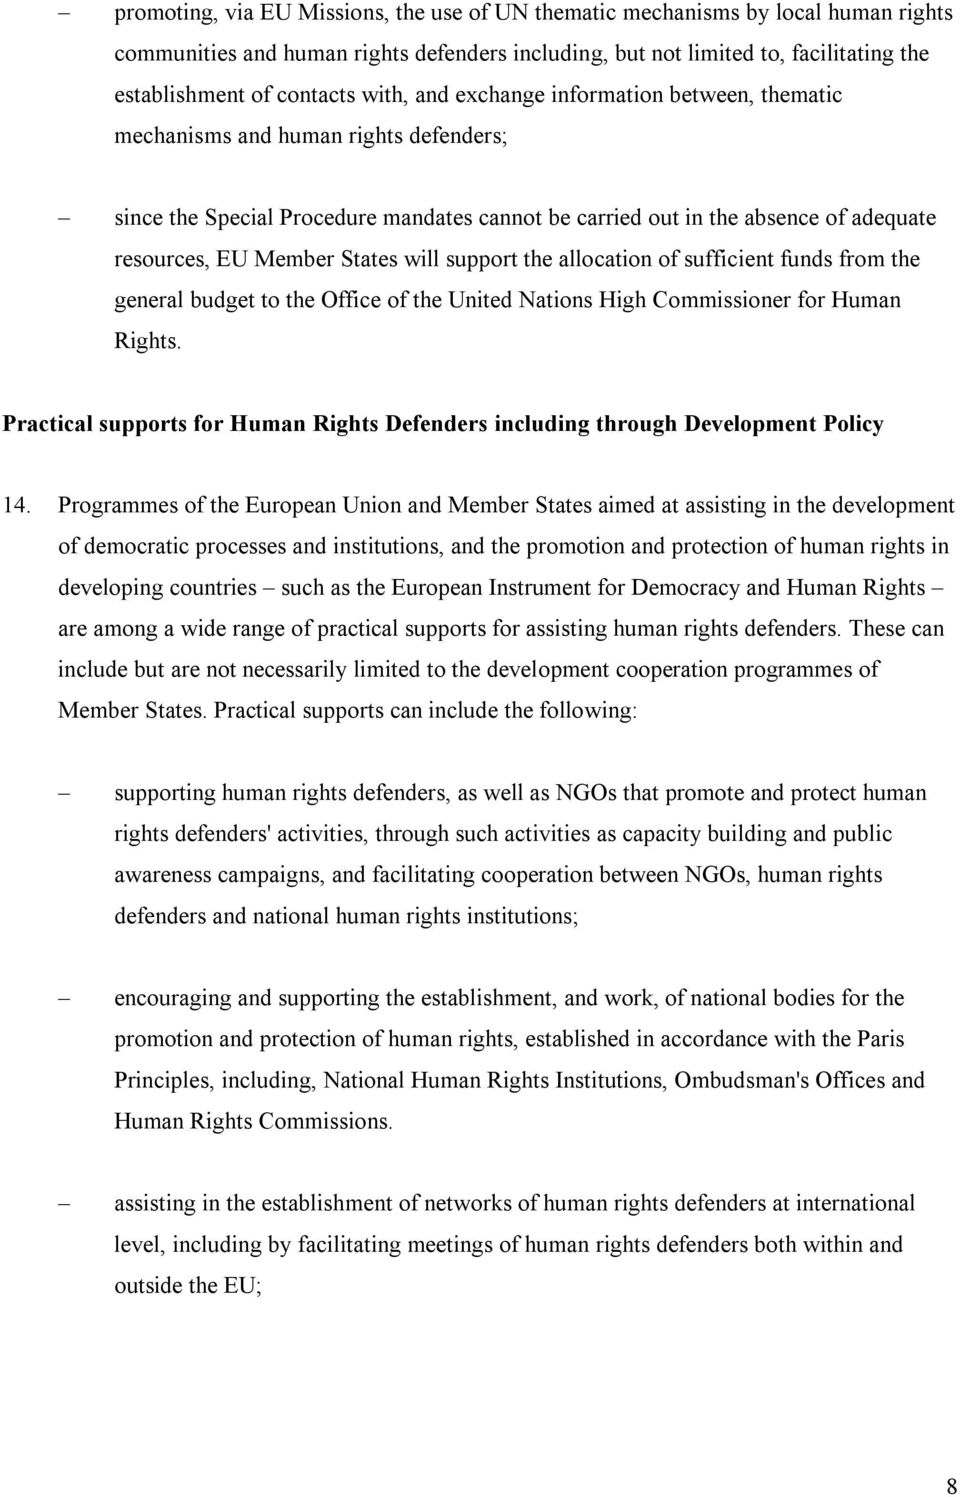 States will support the allocation of sufficient funds from the general budget to the Office of the United Nations High Commissioner for Human Rights.